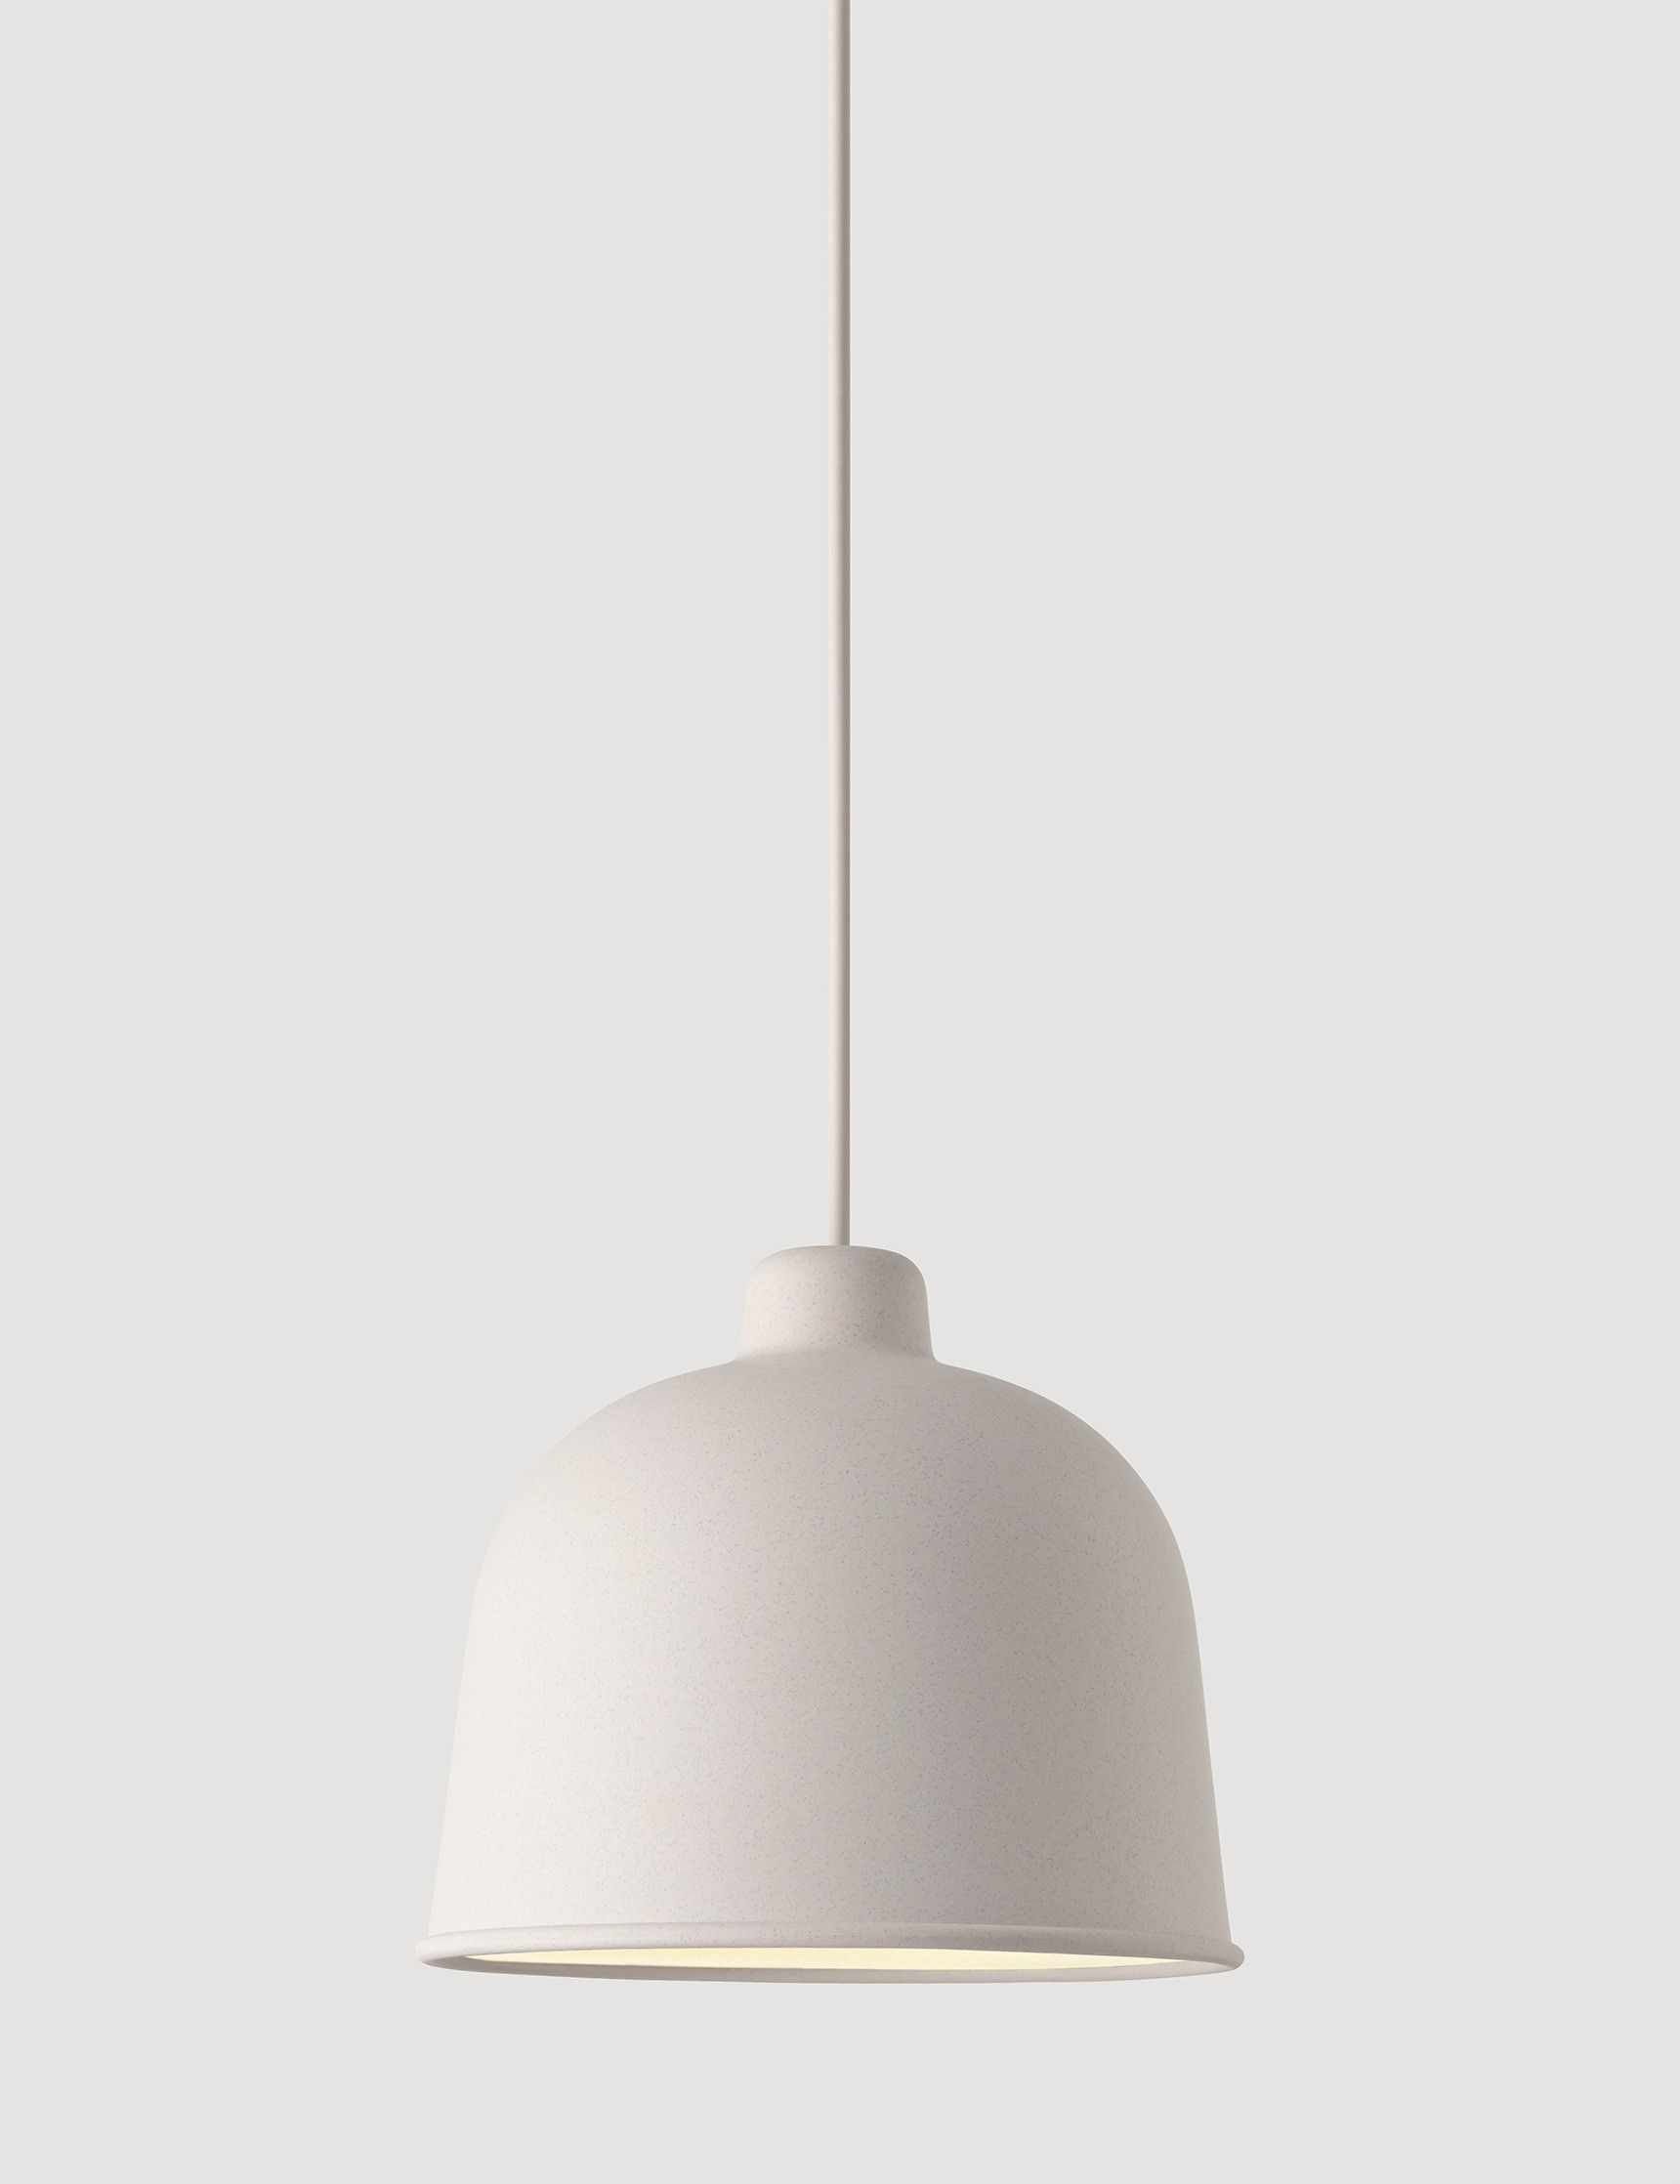 The Grain Lamp Brings A New Perspective To The Pendant Lamp Genre By Combining A Classic Minimalistic Design Wi Scandinavian Pendant Lighting Pendant Lamp Lamp